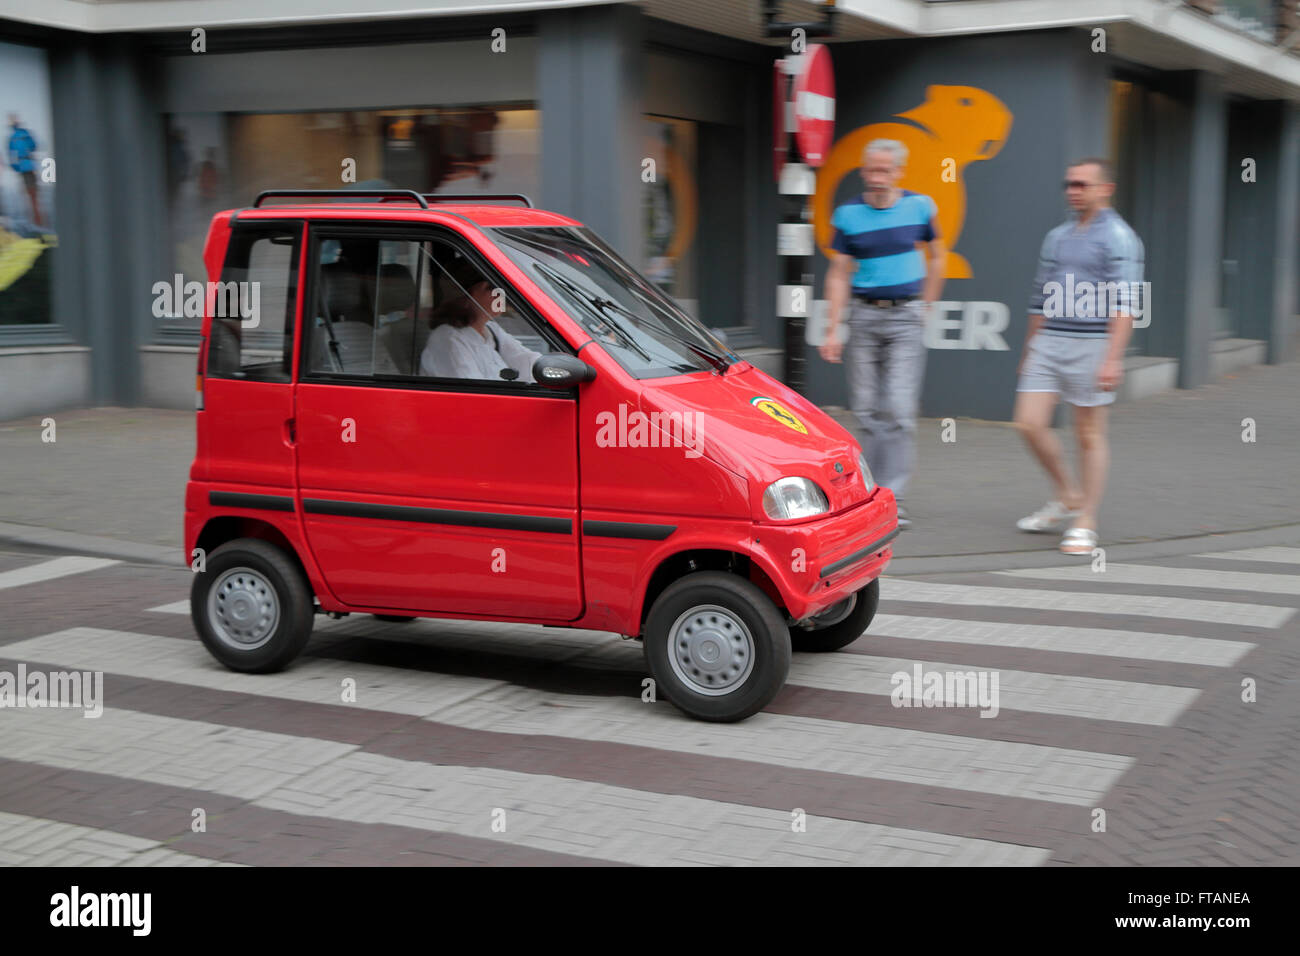 A Canta two-seat microcar specifically created for disabled drivers in the Netherlands, The Hague, Netherlands. - Stock Image